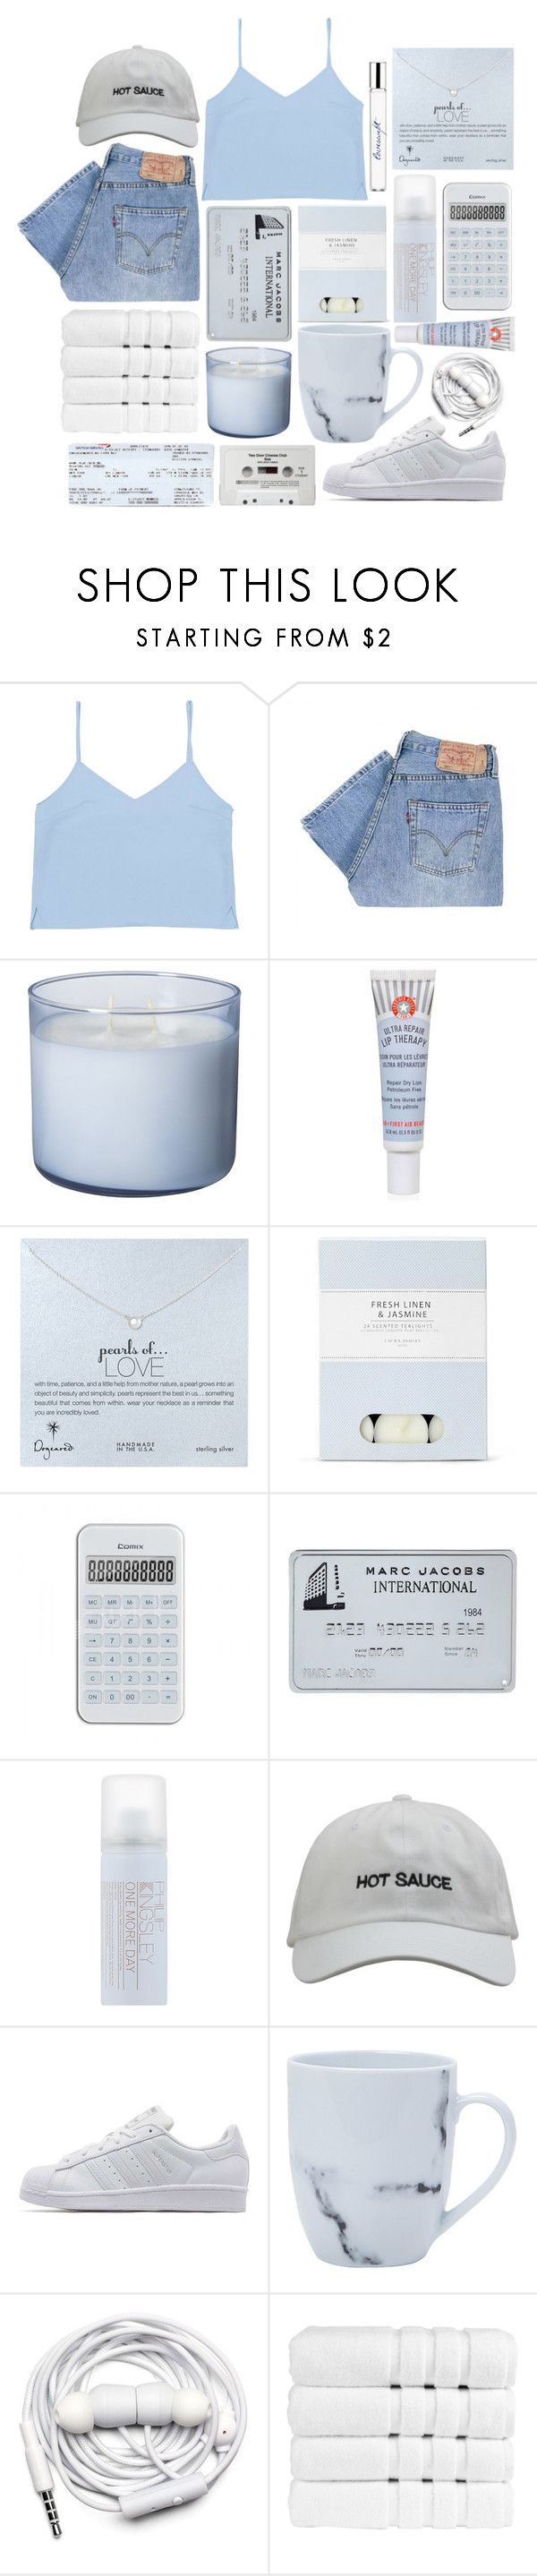 """""""I promise"""" by queen-elizabeth2000 ❤ liked on Polyvore featuring Levi's, First Aid Beauty, Dogeared, Laura Ashley, Philip Kingsley, CASSETTE, adidas Originals, Urbanears, Christy and philosophy"""